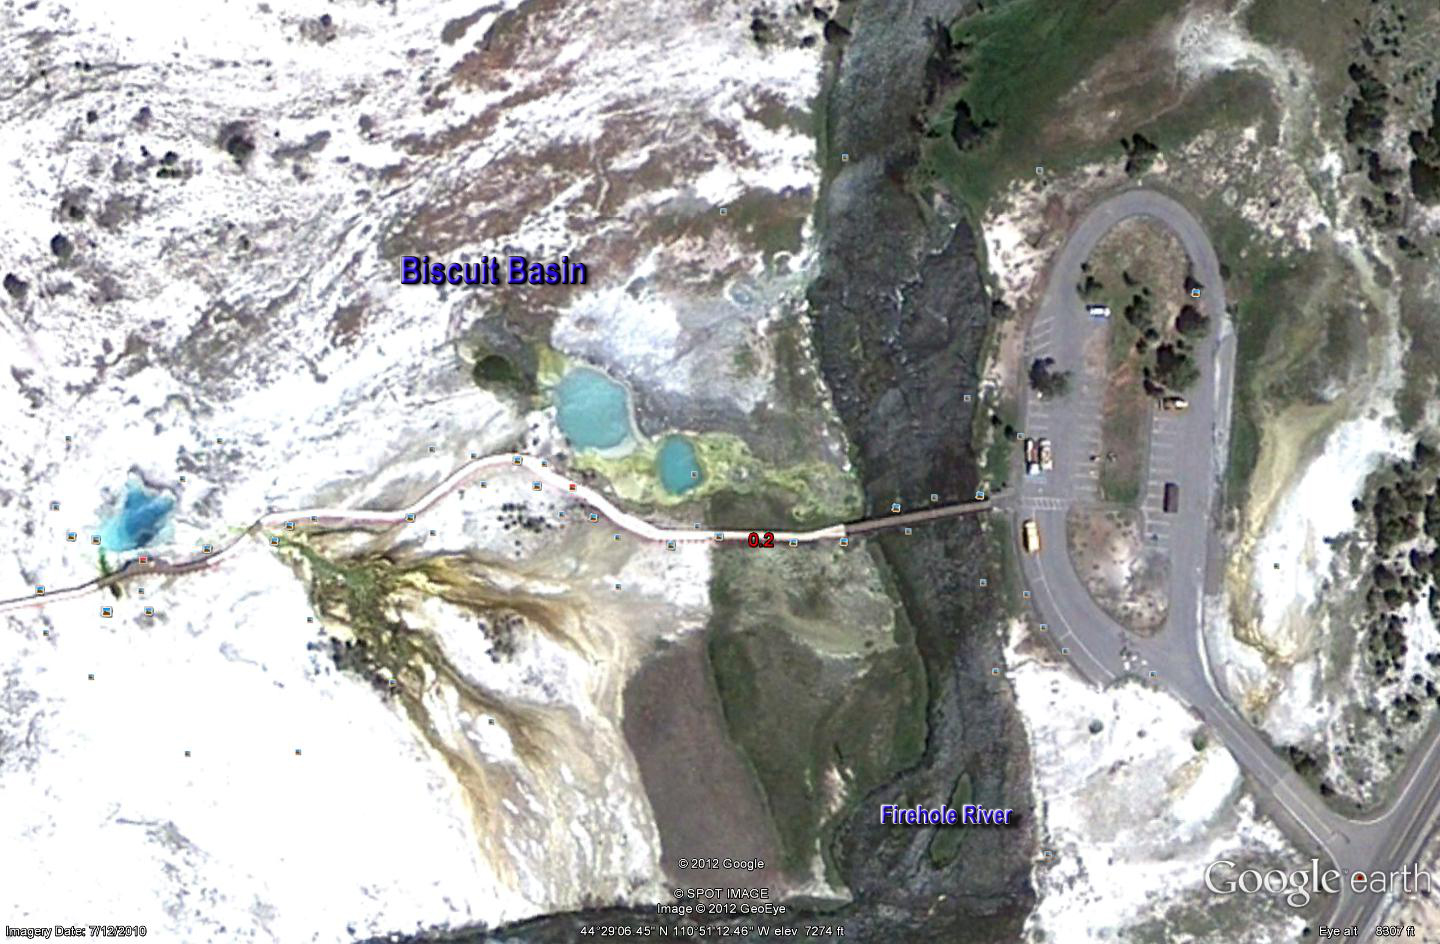 Google Biscuit Basin Geyser Map 2 - Yellowstone National Park